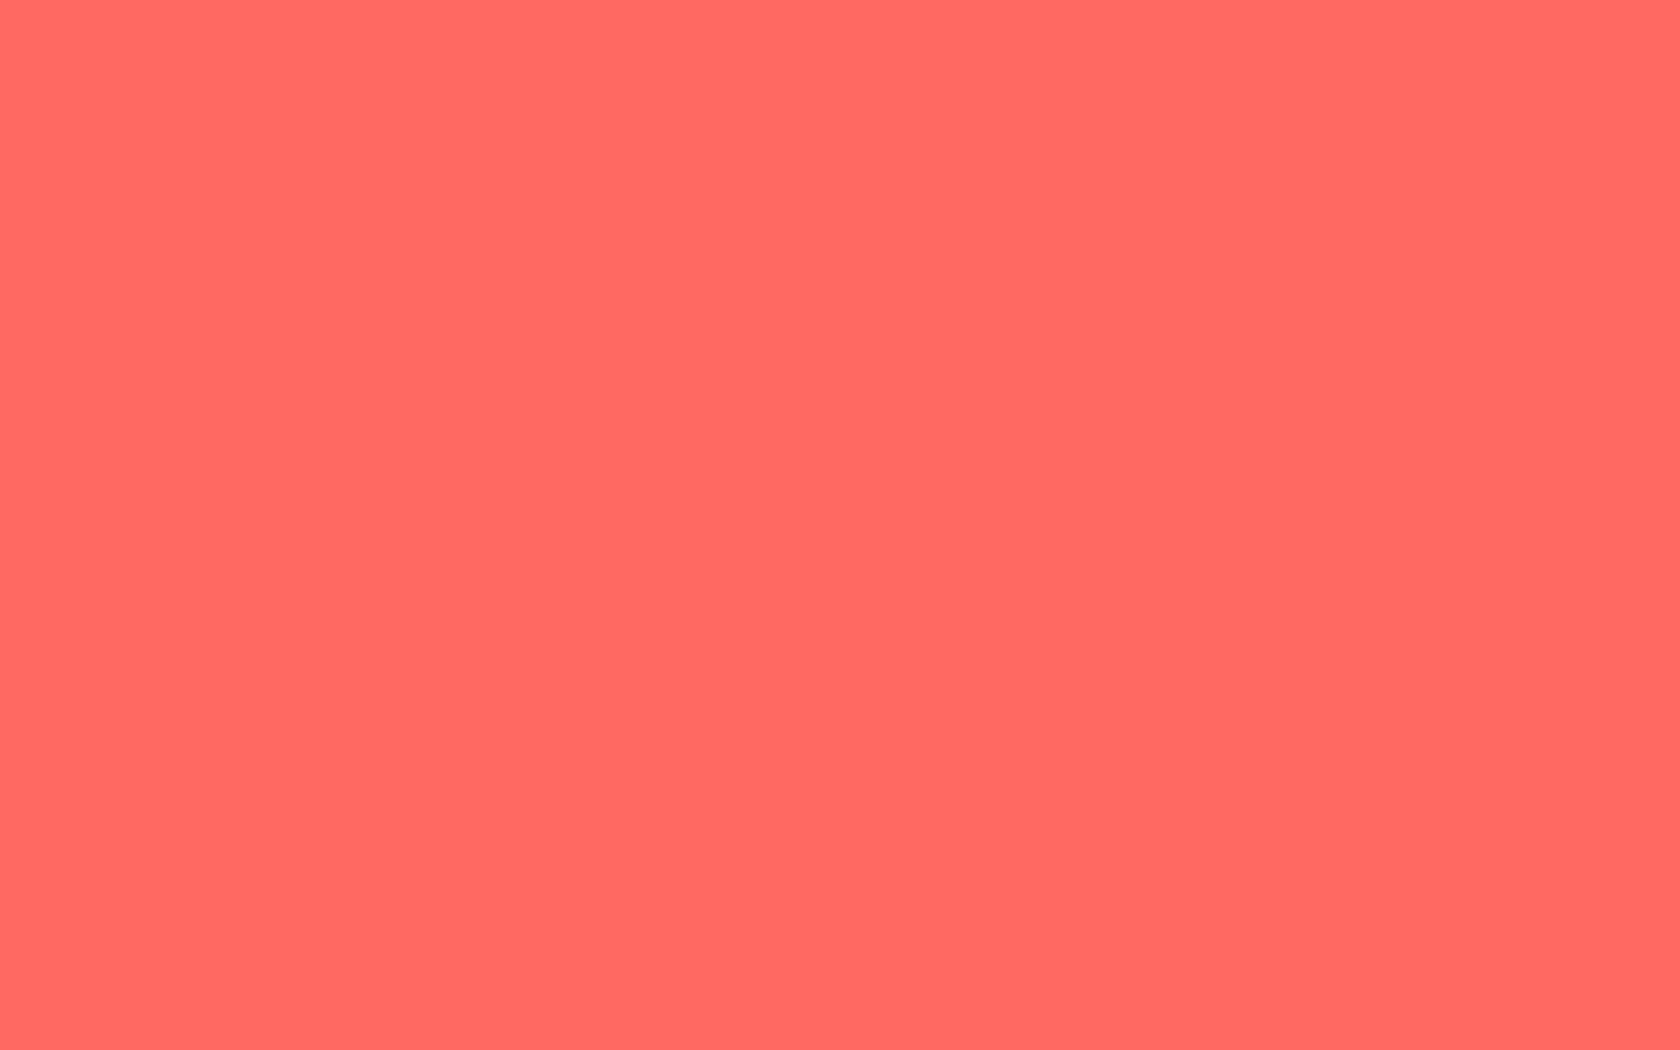 1680x1050 Pastel Red Solid Color Background